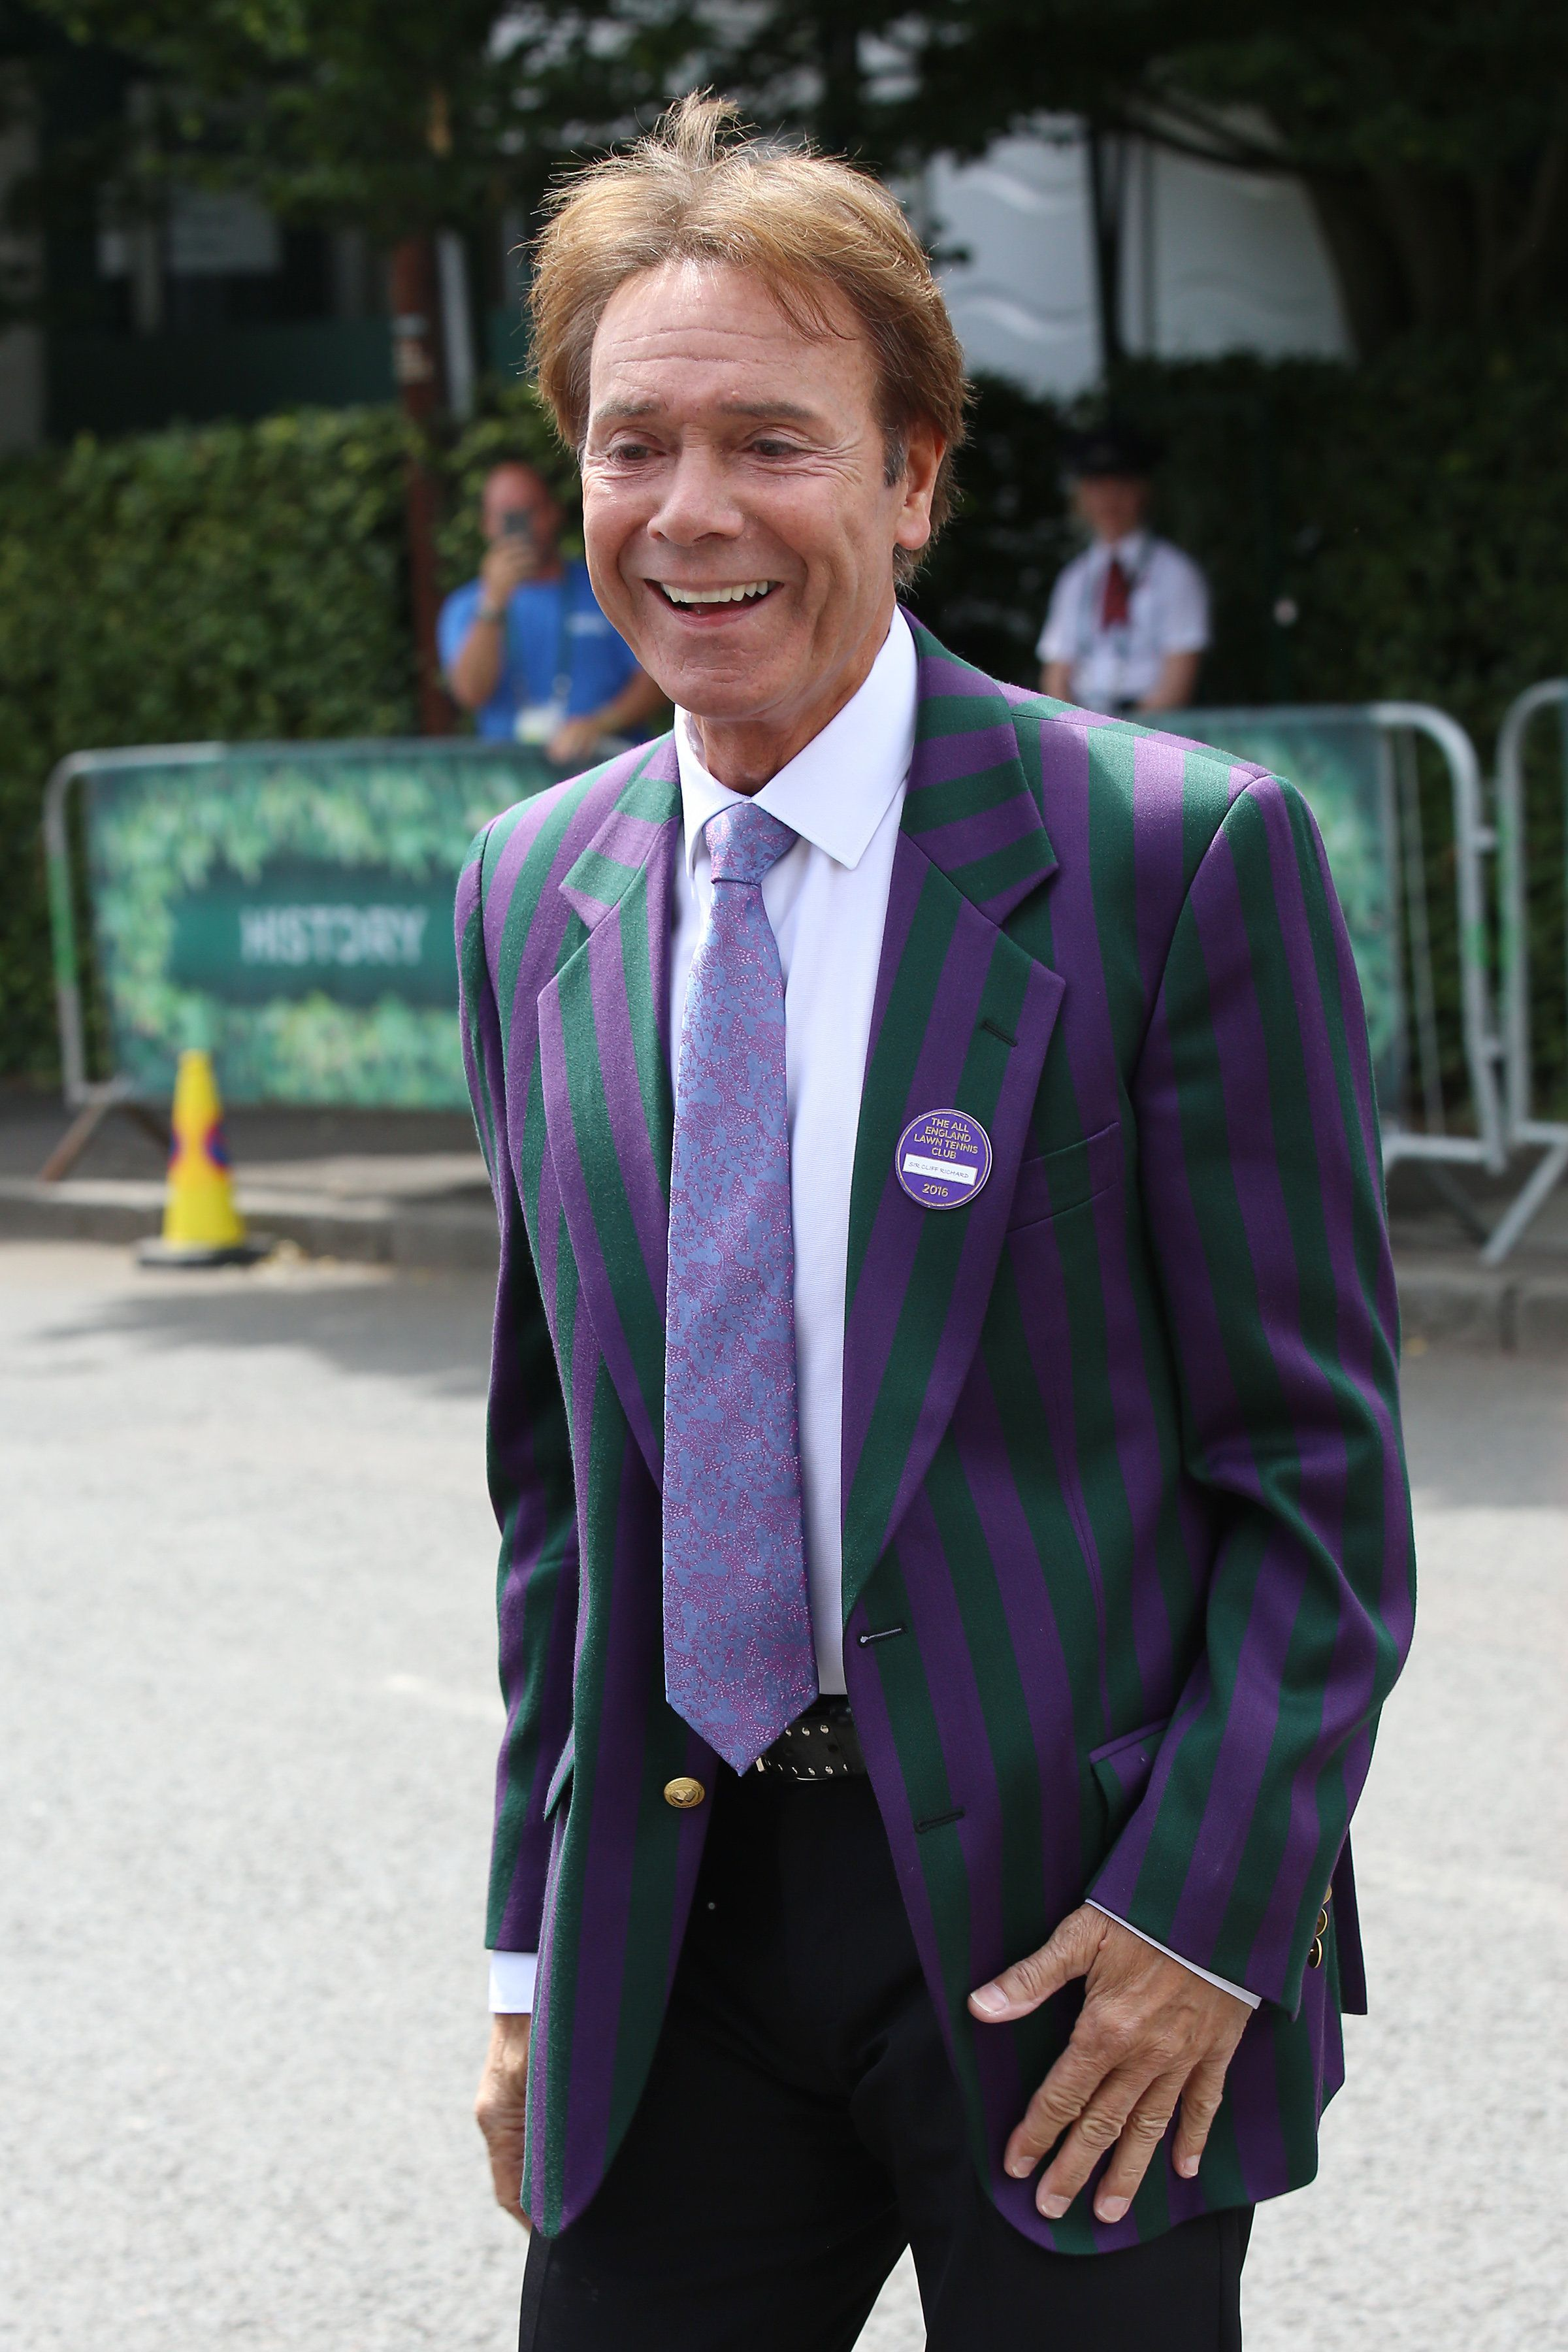 Sir Cliff Richardto sue the BBC and South Yorkshire Police for £1 million over live coverage...